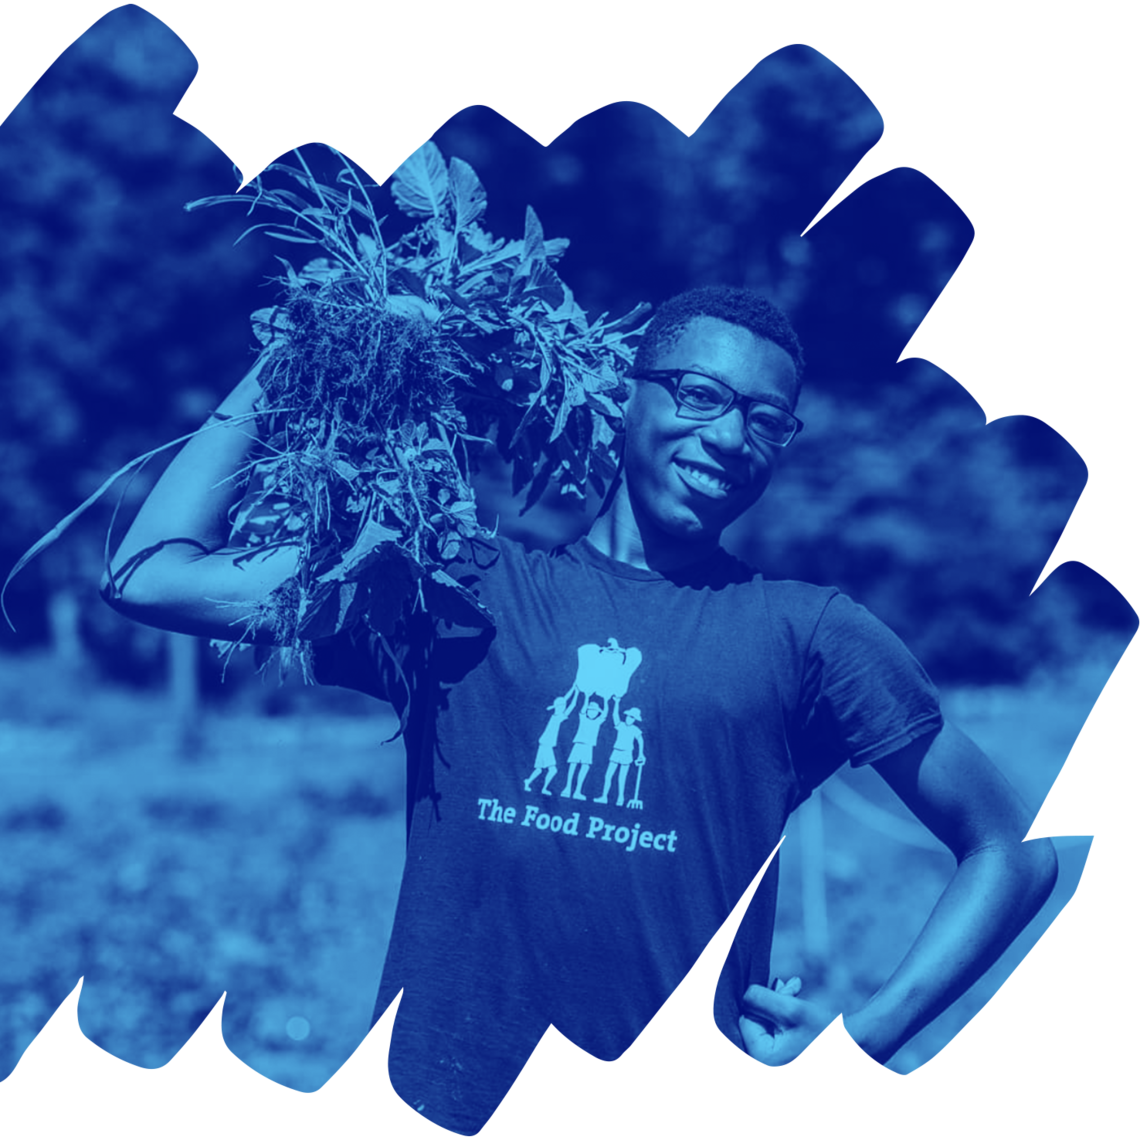 Image of a person with glasses holding harvested greens over their shoulder. Their other arm is bent with the hand making a fist against their hip. They are standing in a garden and smiling towards the camera.